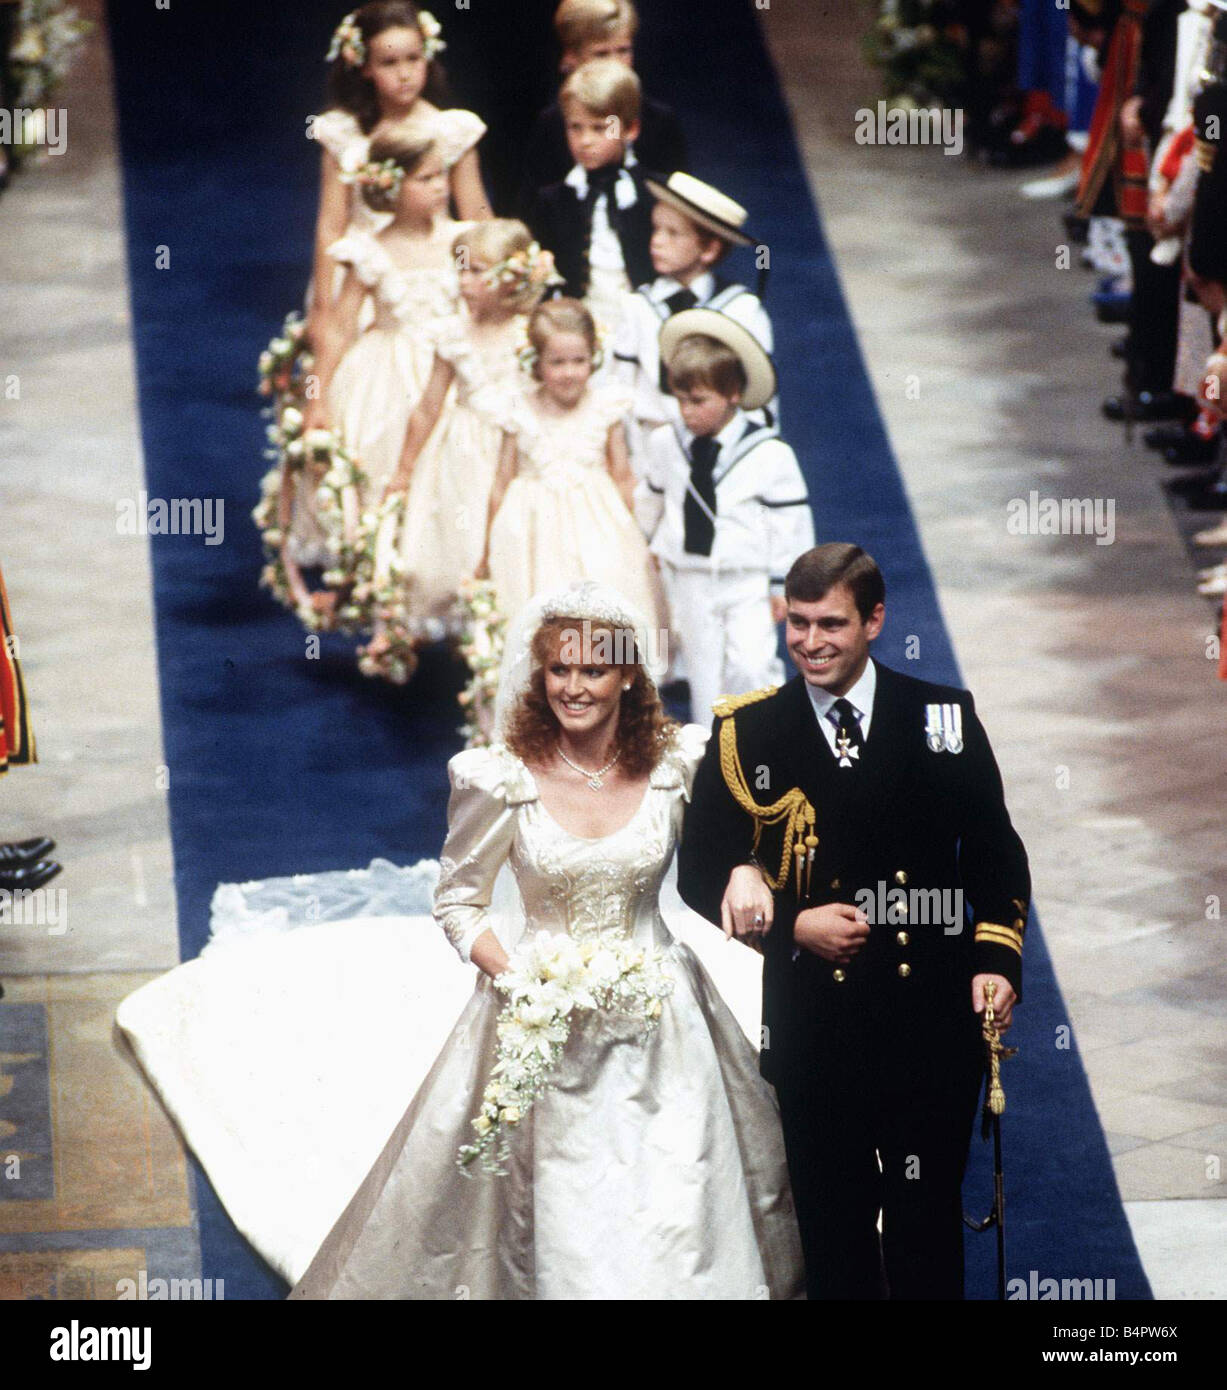 Duchess Of York Wedding Stock Photos & Duchess Of York Wedding Stock ...